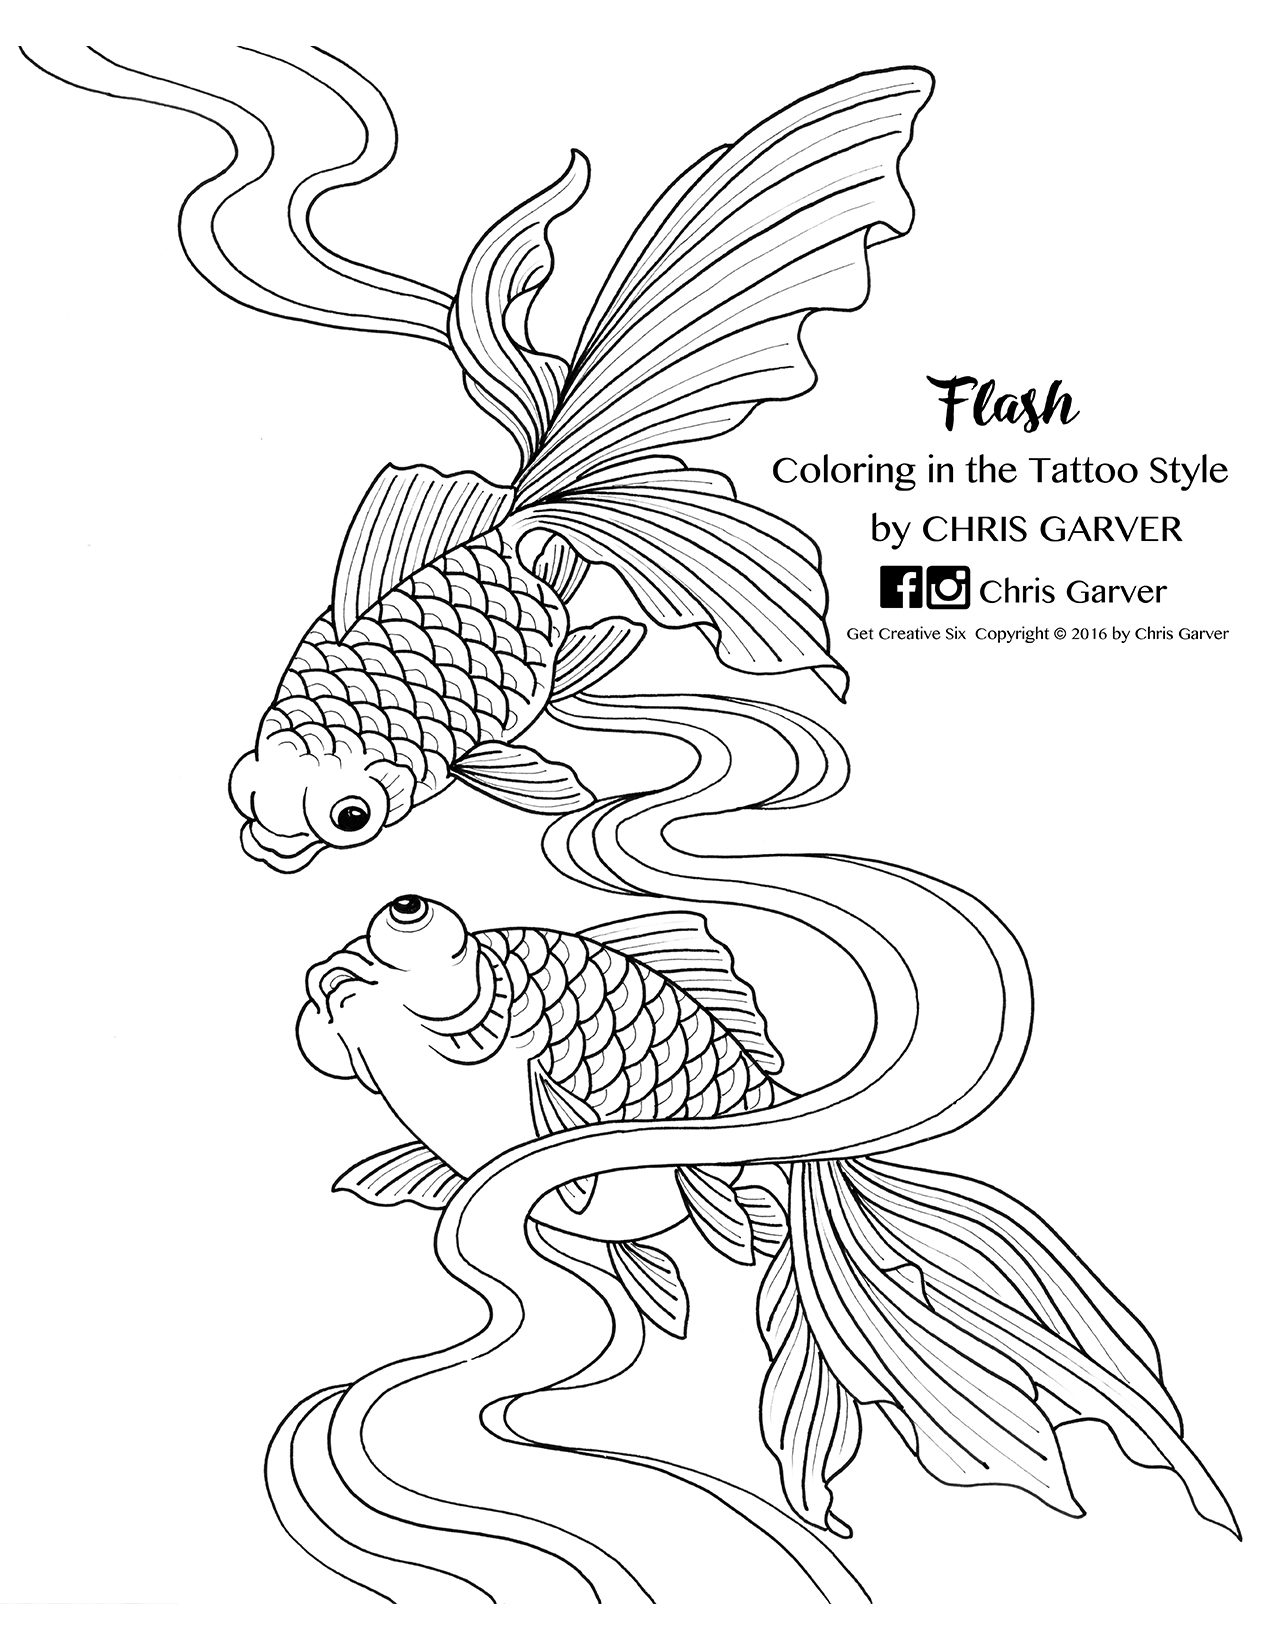 Flash Coloring In The Tattoo Style Book Printables